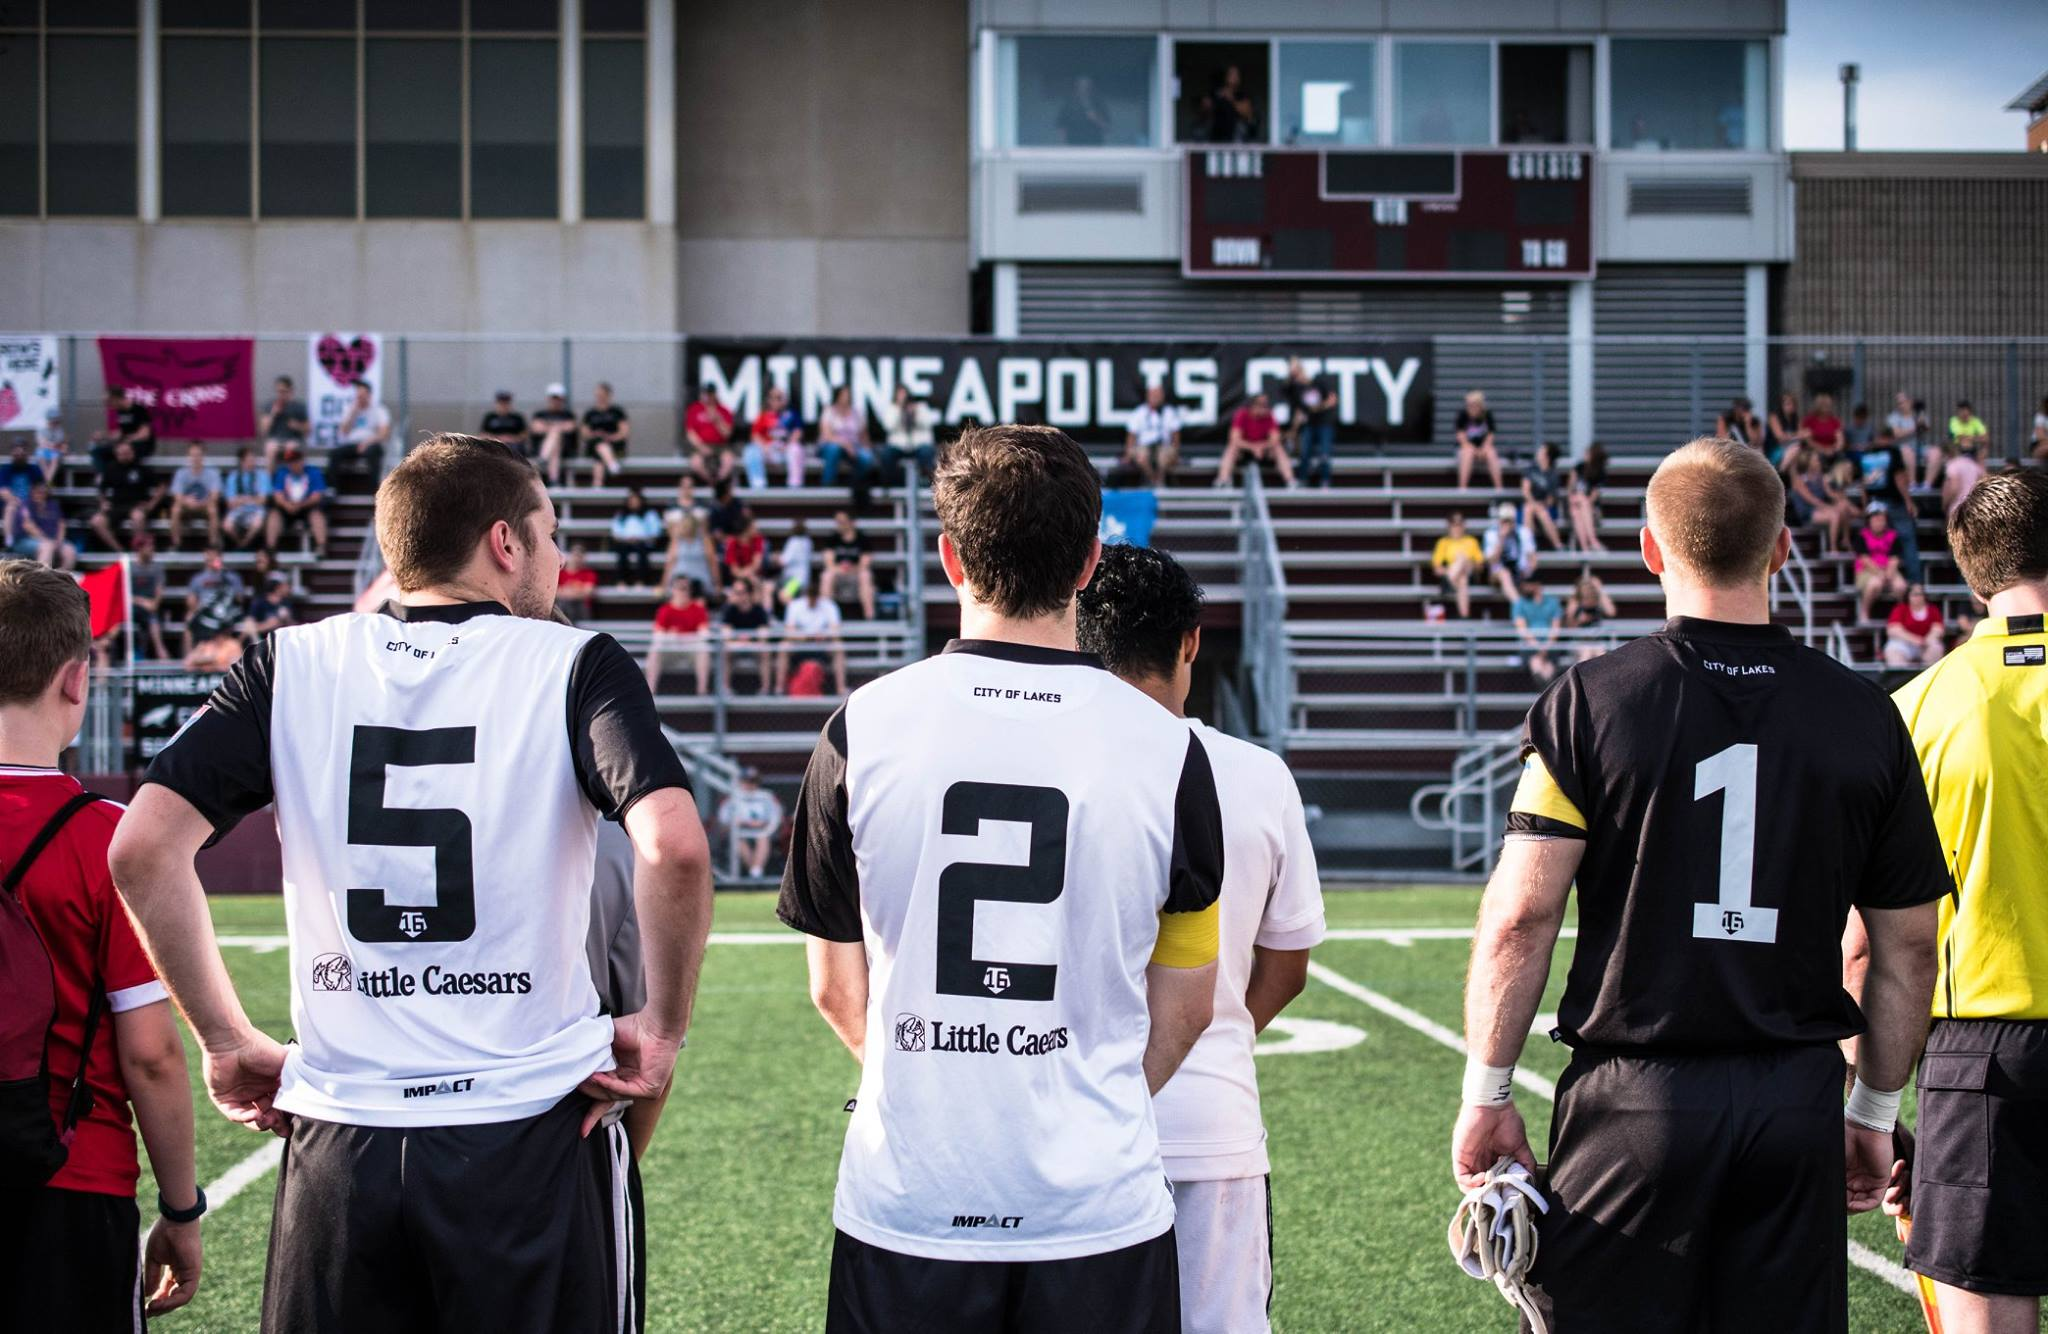 Minneapolis City SC's (L to R) AJ Albers, Aaron Olson, and Matt Elder before a home game at Augsburg College's Edor Nelson Field // Photo via Minneapolis City SC's Facebook